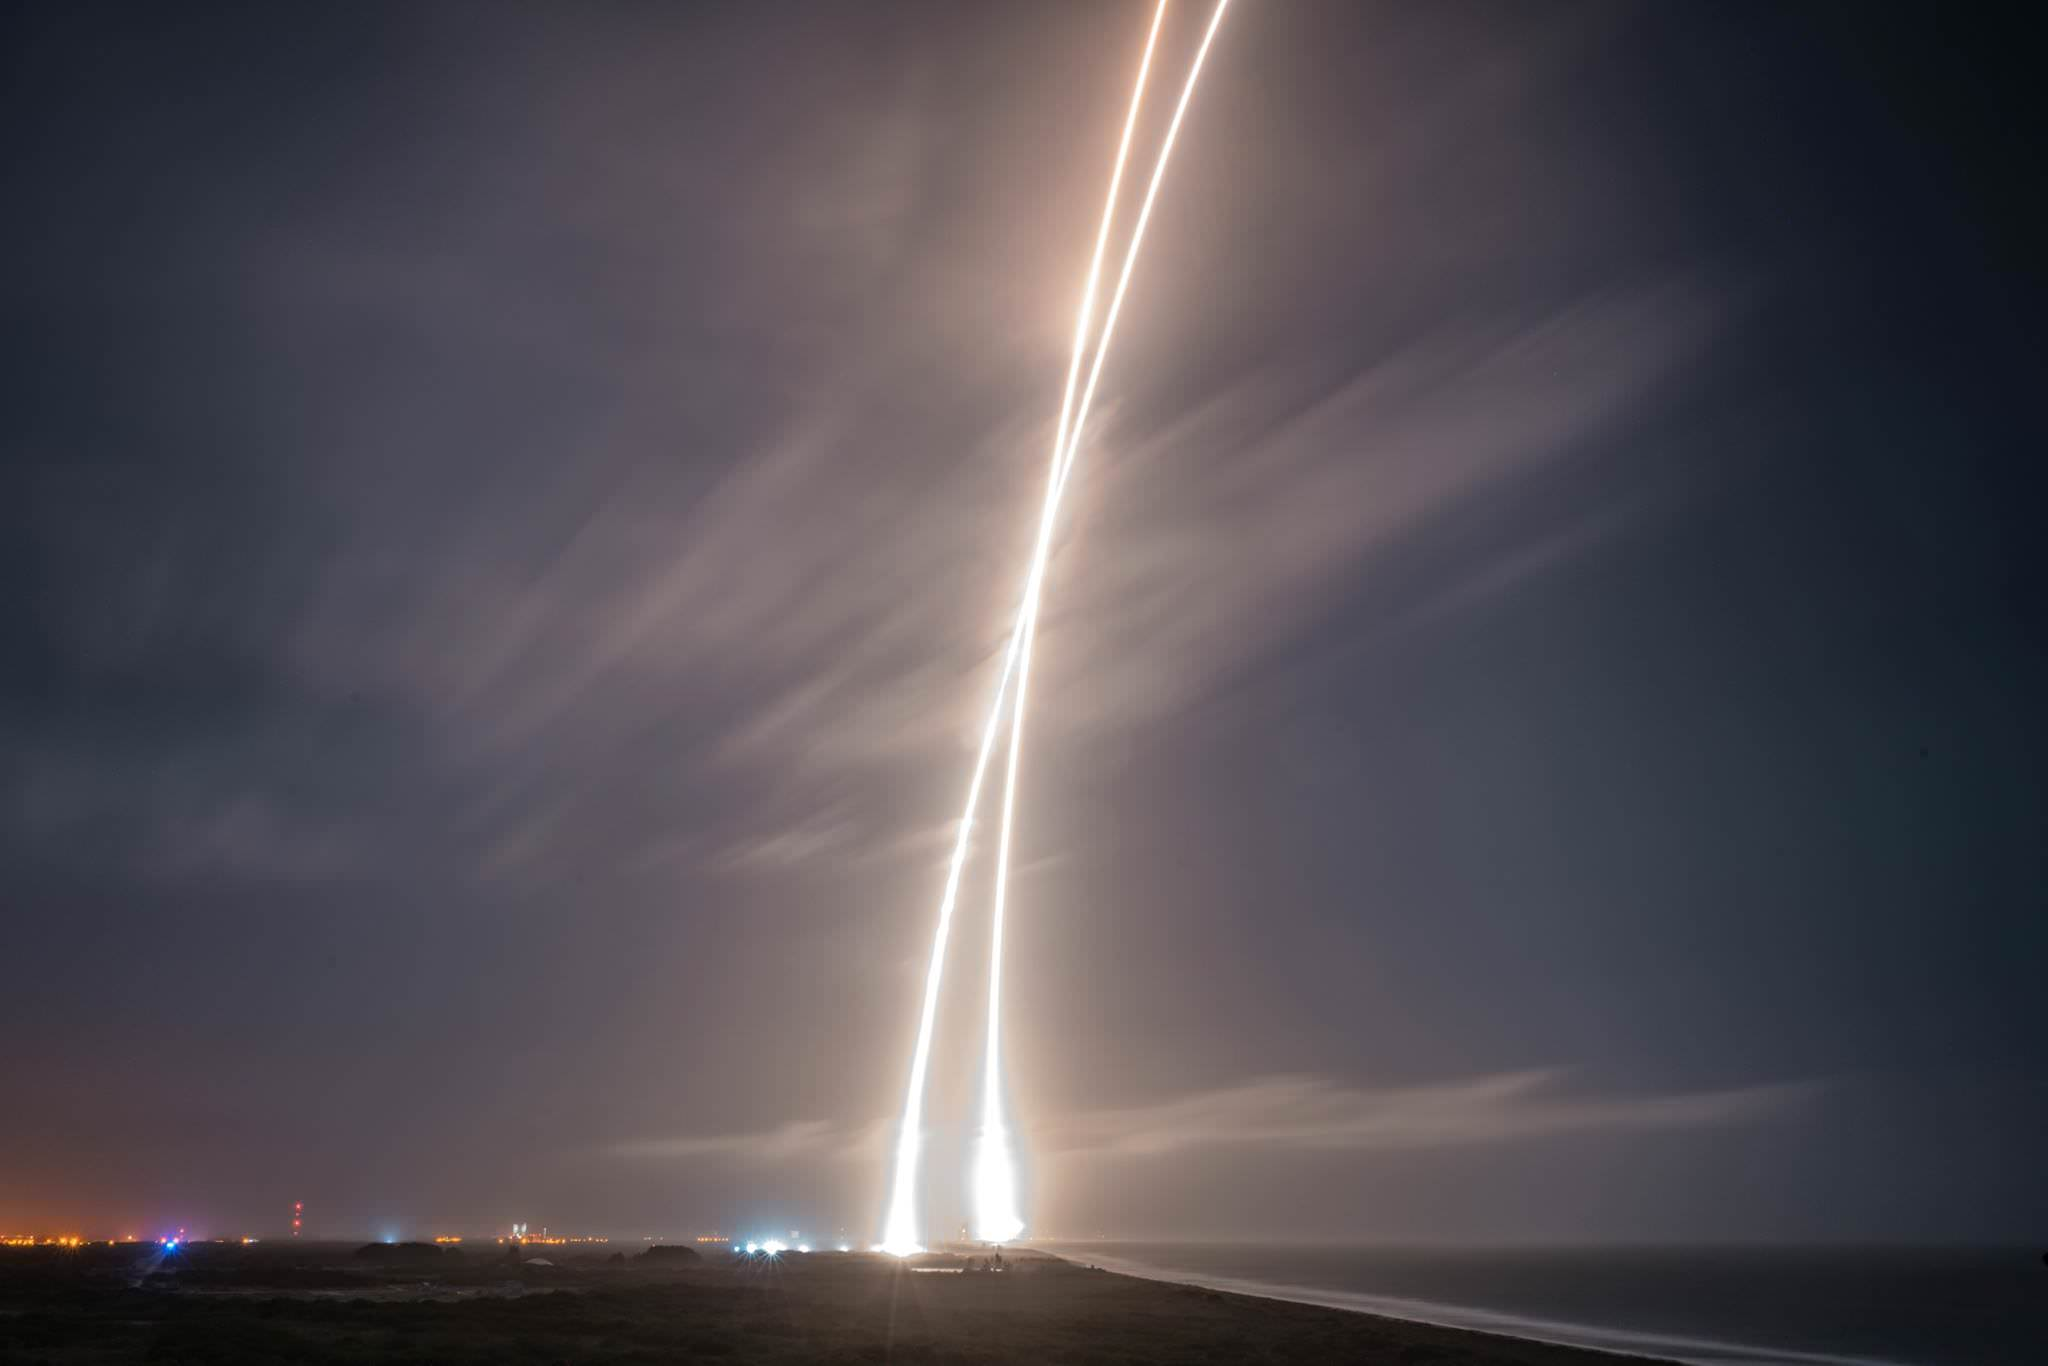 Long exposure of launch, re-entry, and landing burns of SpaceX Falcon 9 on Dec. 21, 2015. Credit: SpaceX